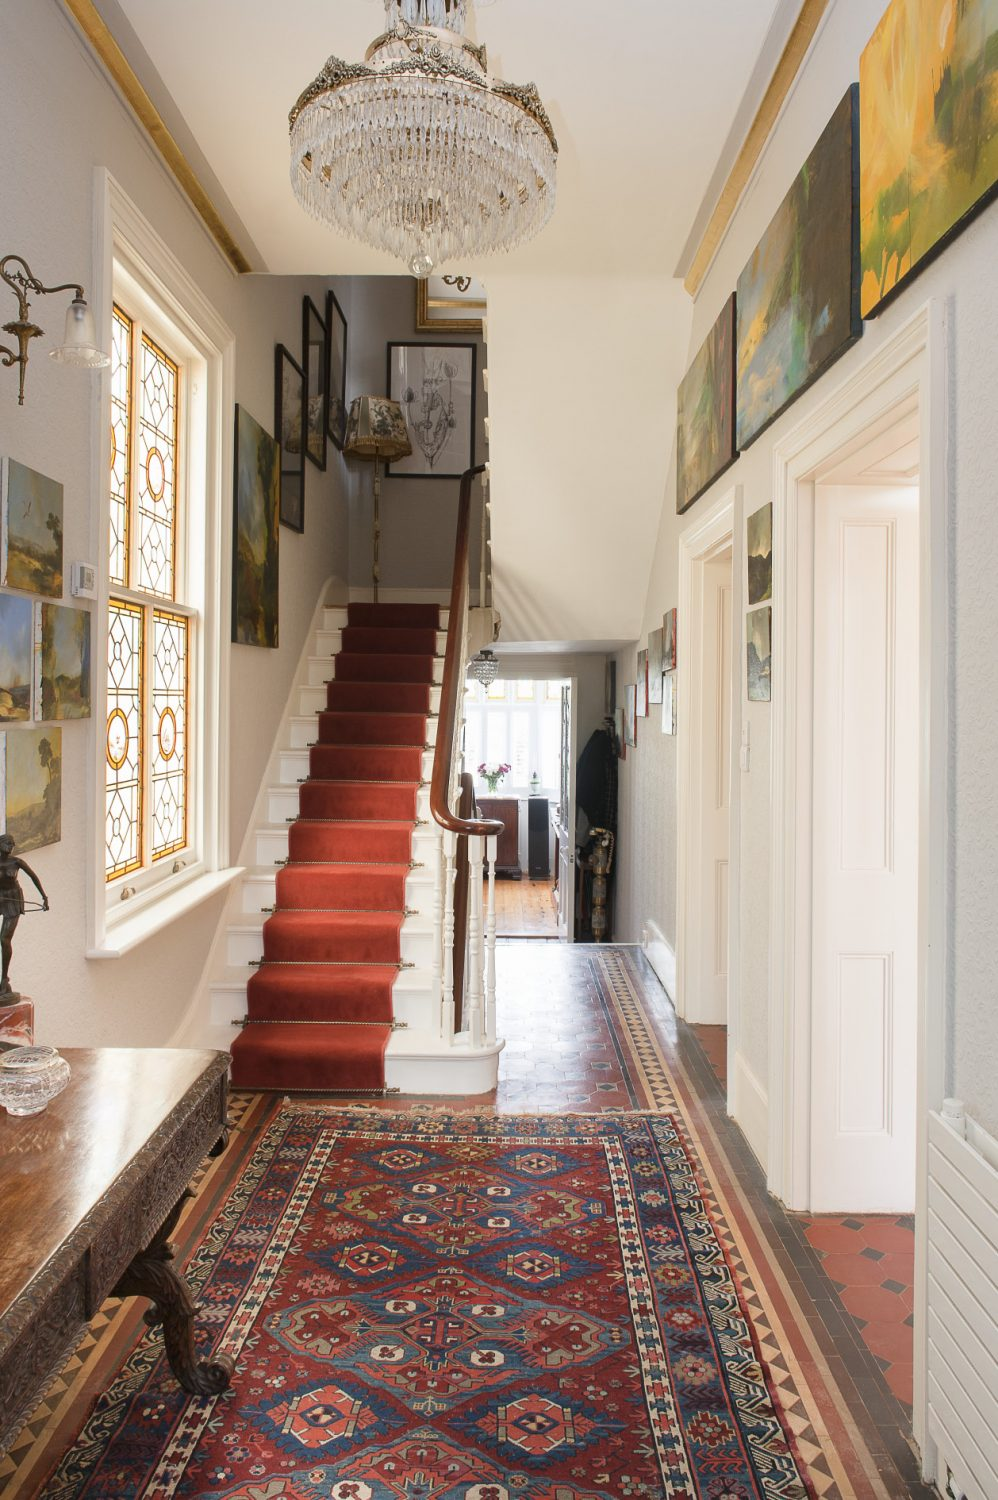 The hallway features a glowing amber stained glass window that Ken sourced in London to replace the original. Doors at the end of the hallway lead into the house's own private chapel